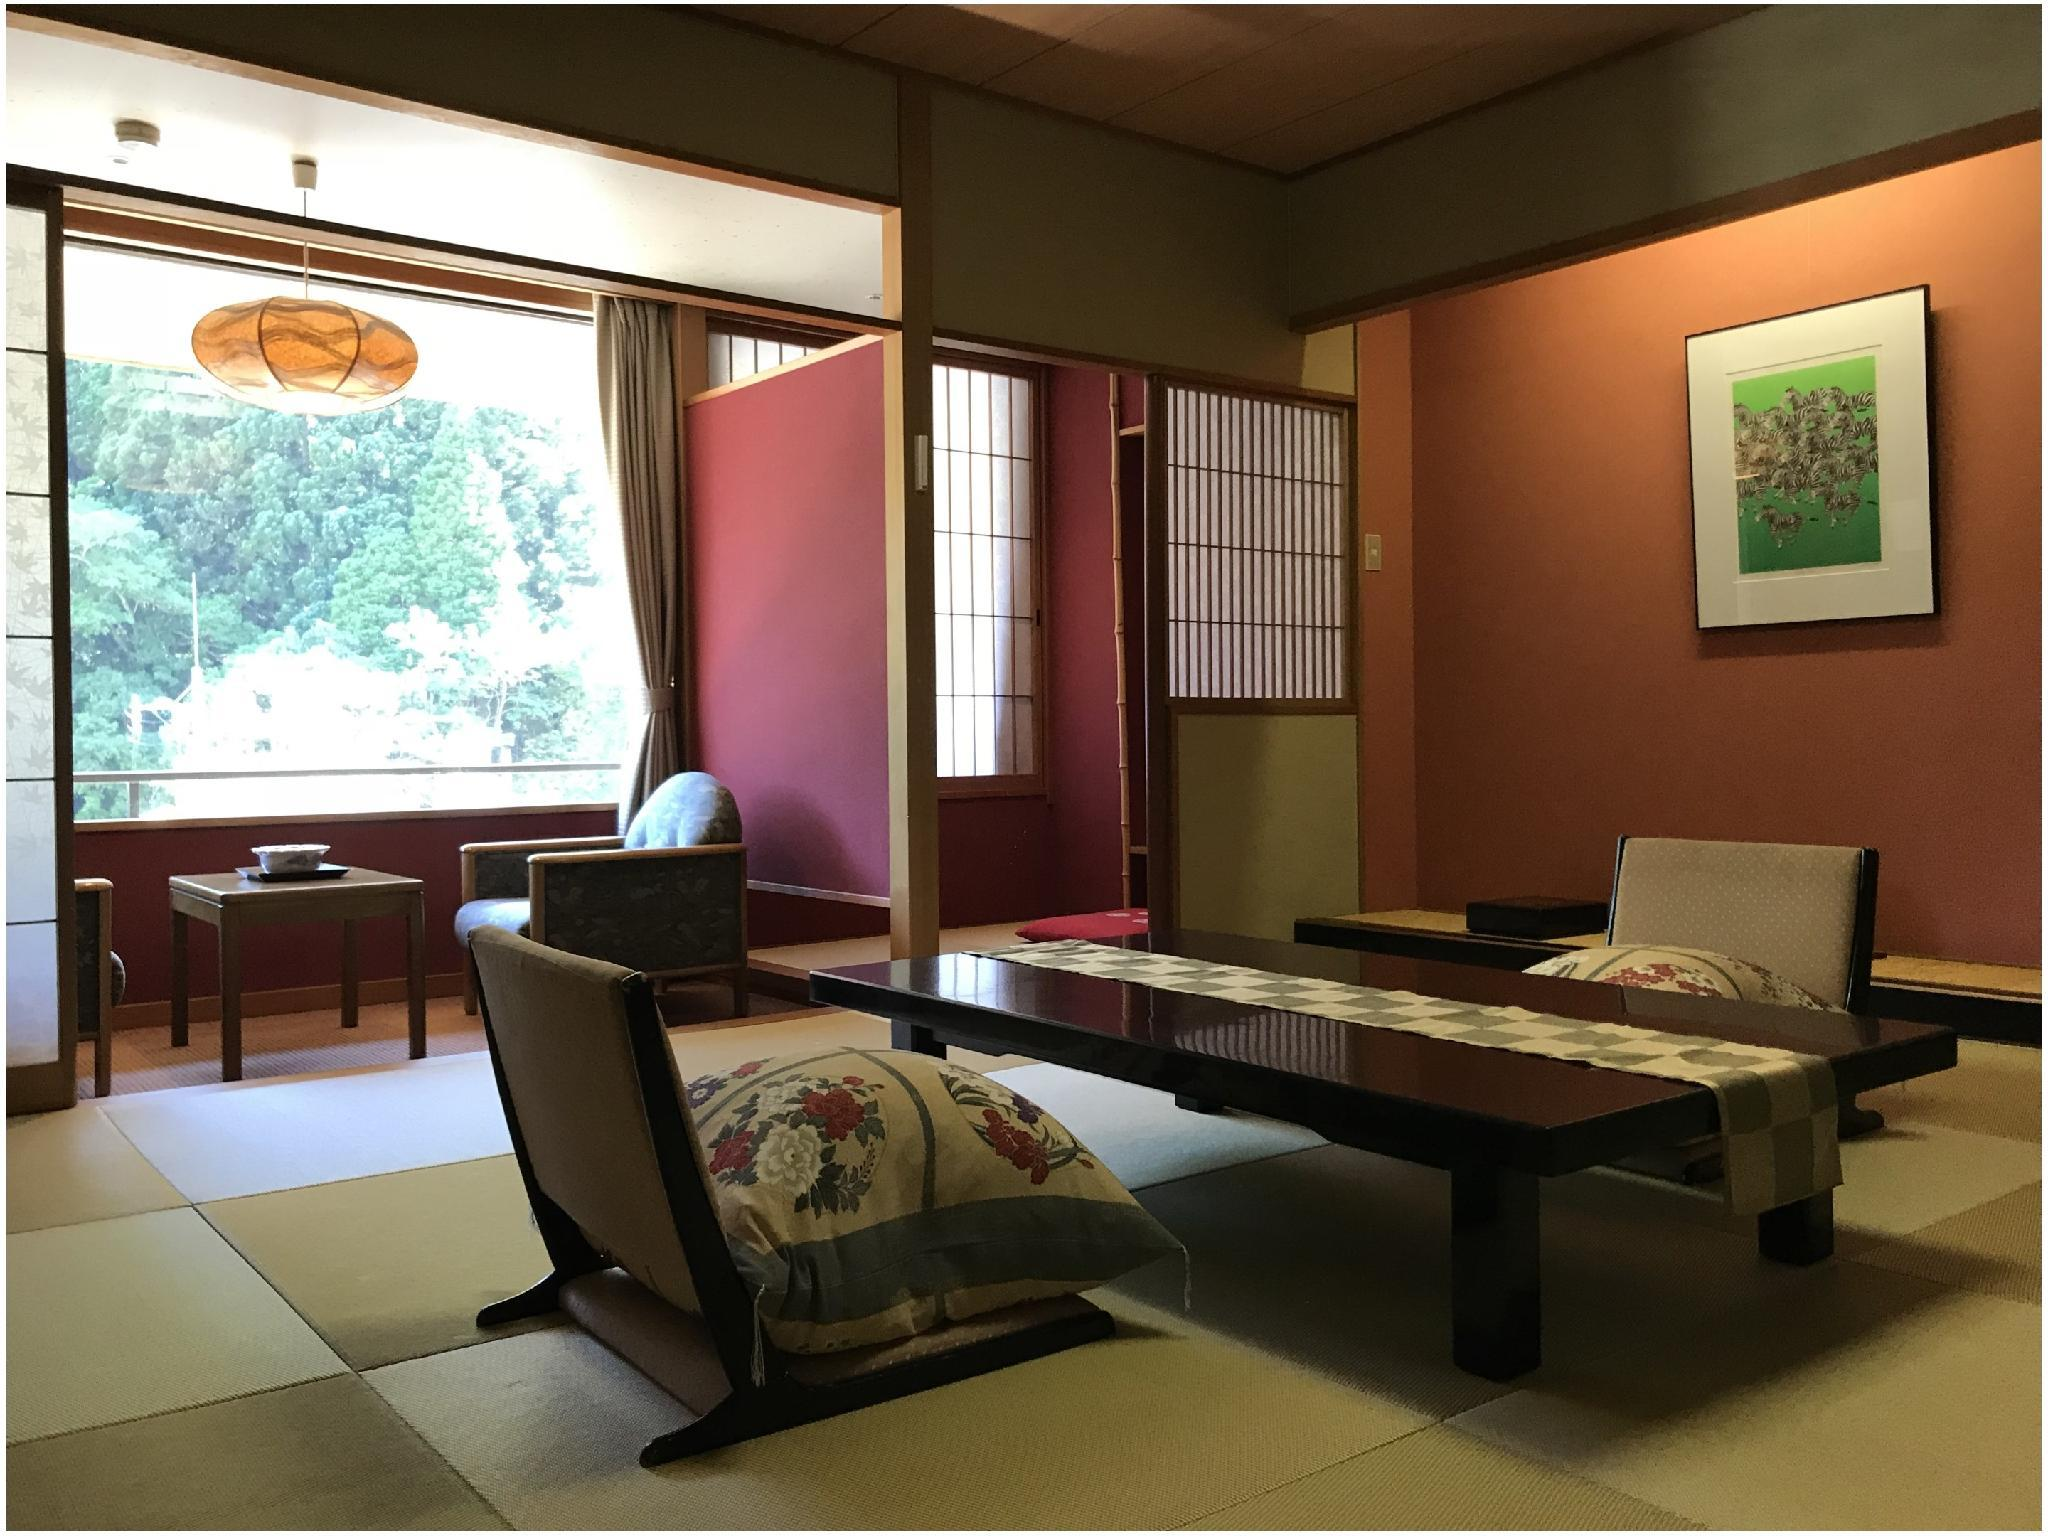 河景日式客房 (River View Japanese Style Room)